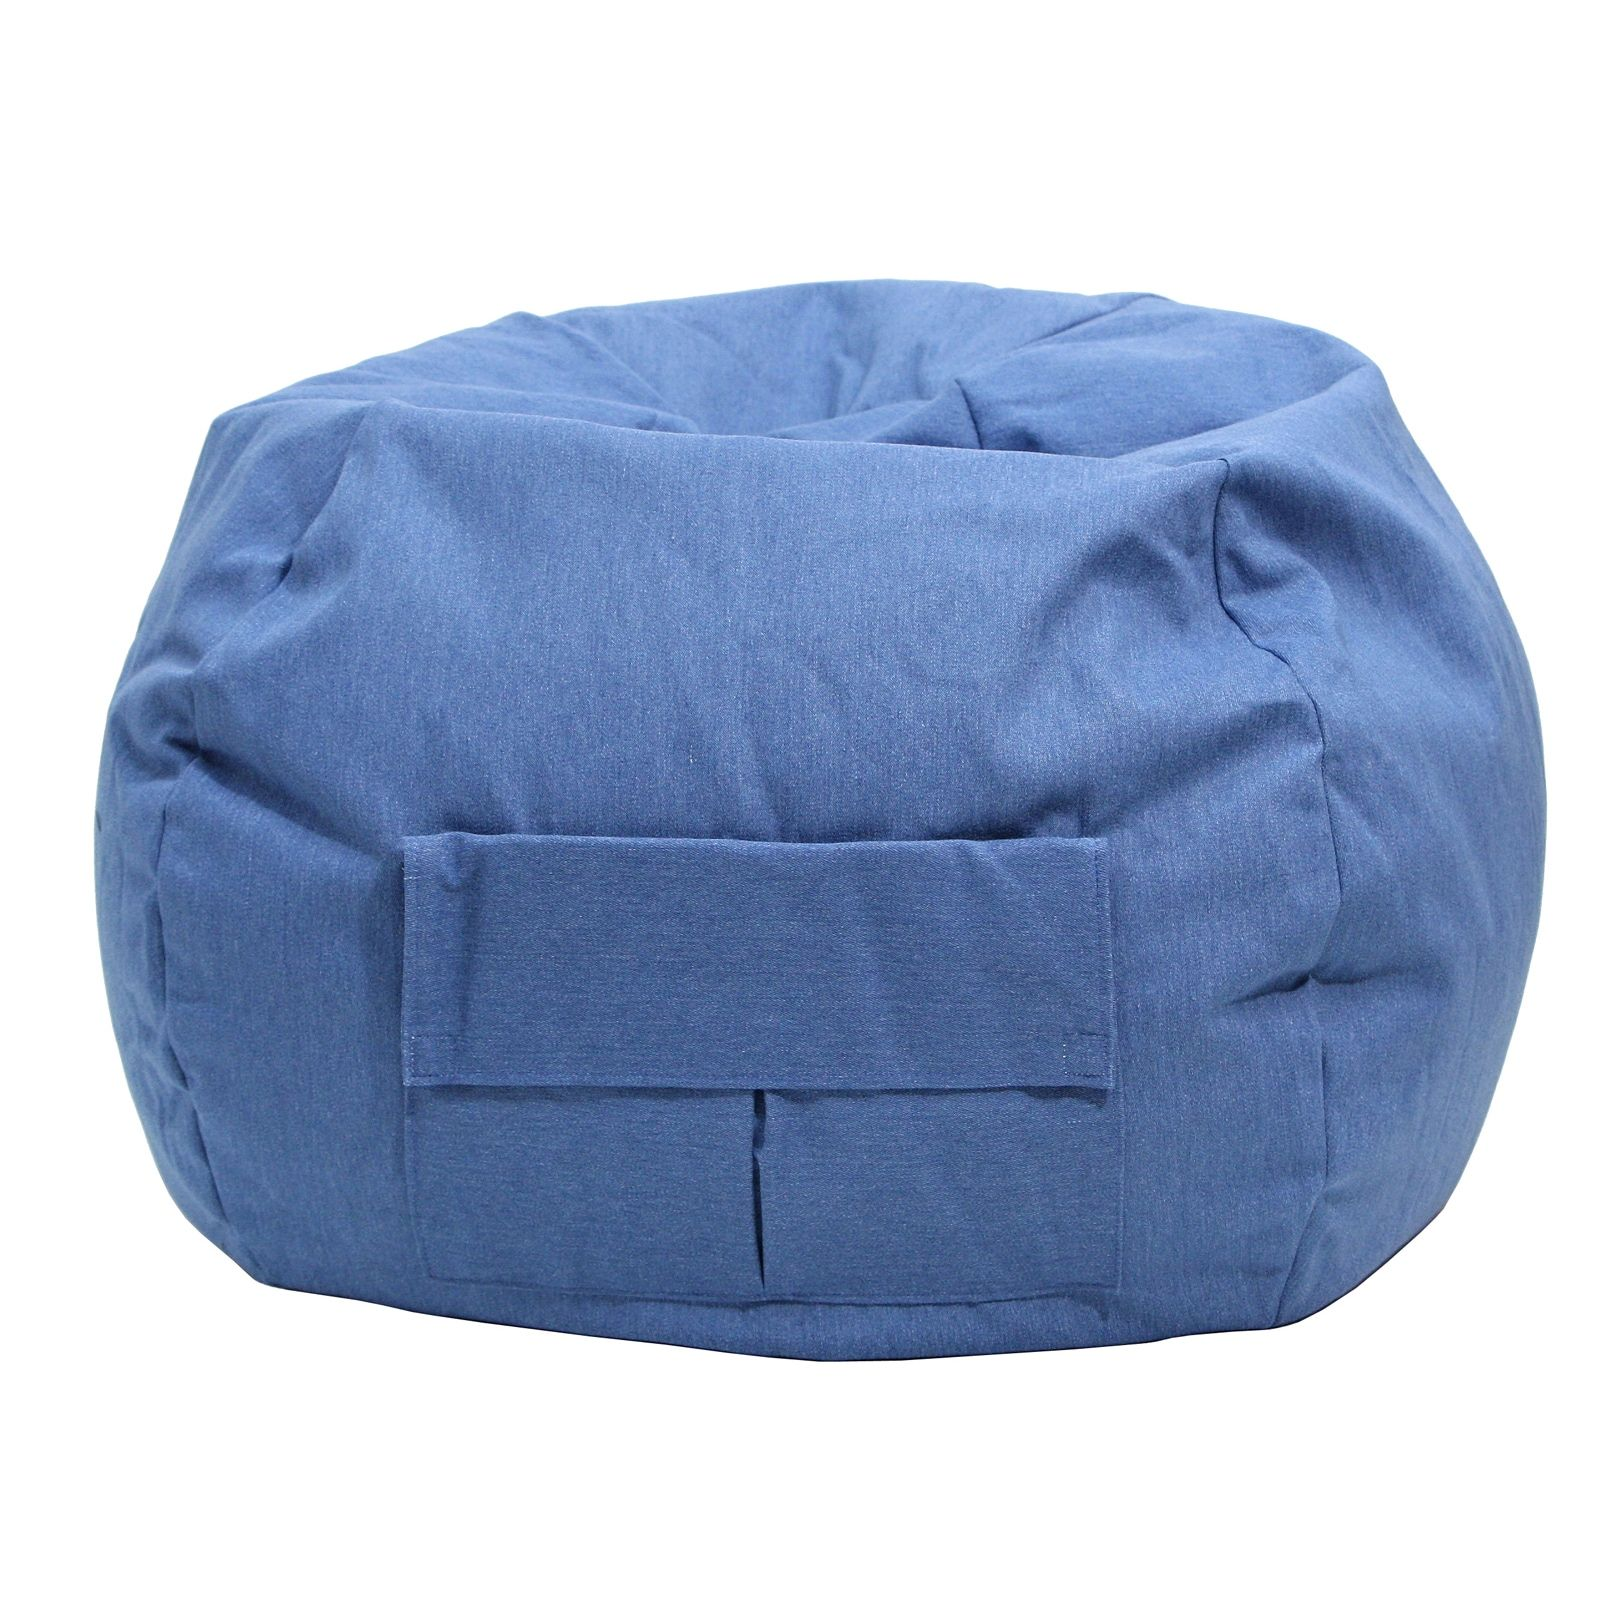 Extra Large Bean Bag Chairs Gold Medal Cargo Pocket Blue Denim Look Extra Large Bean